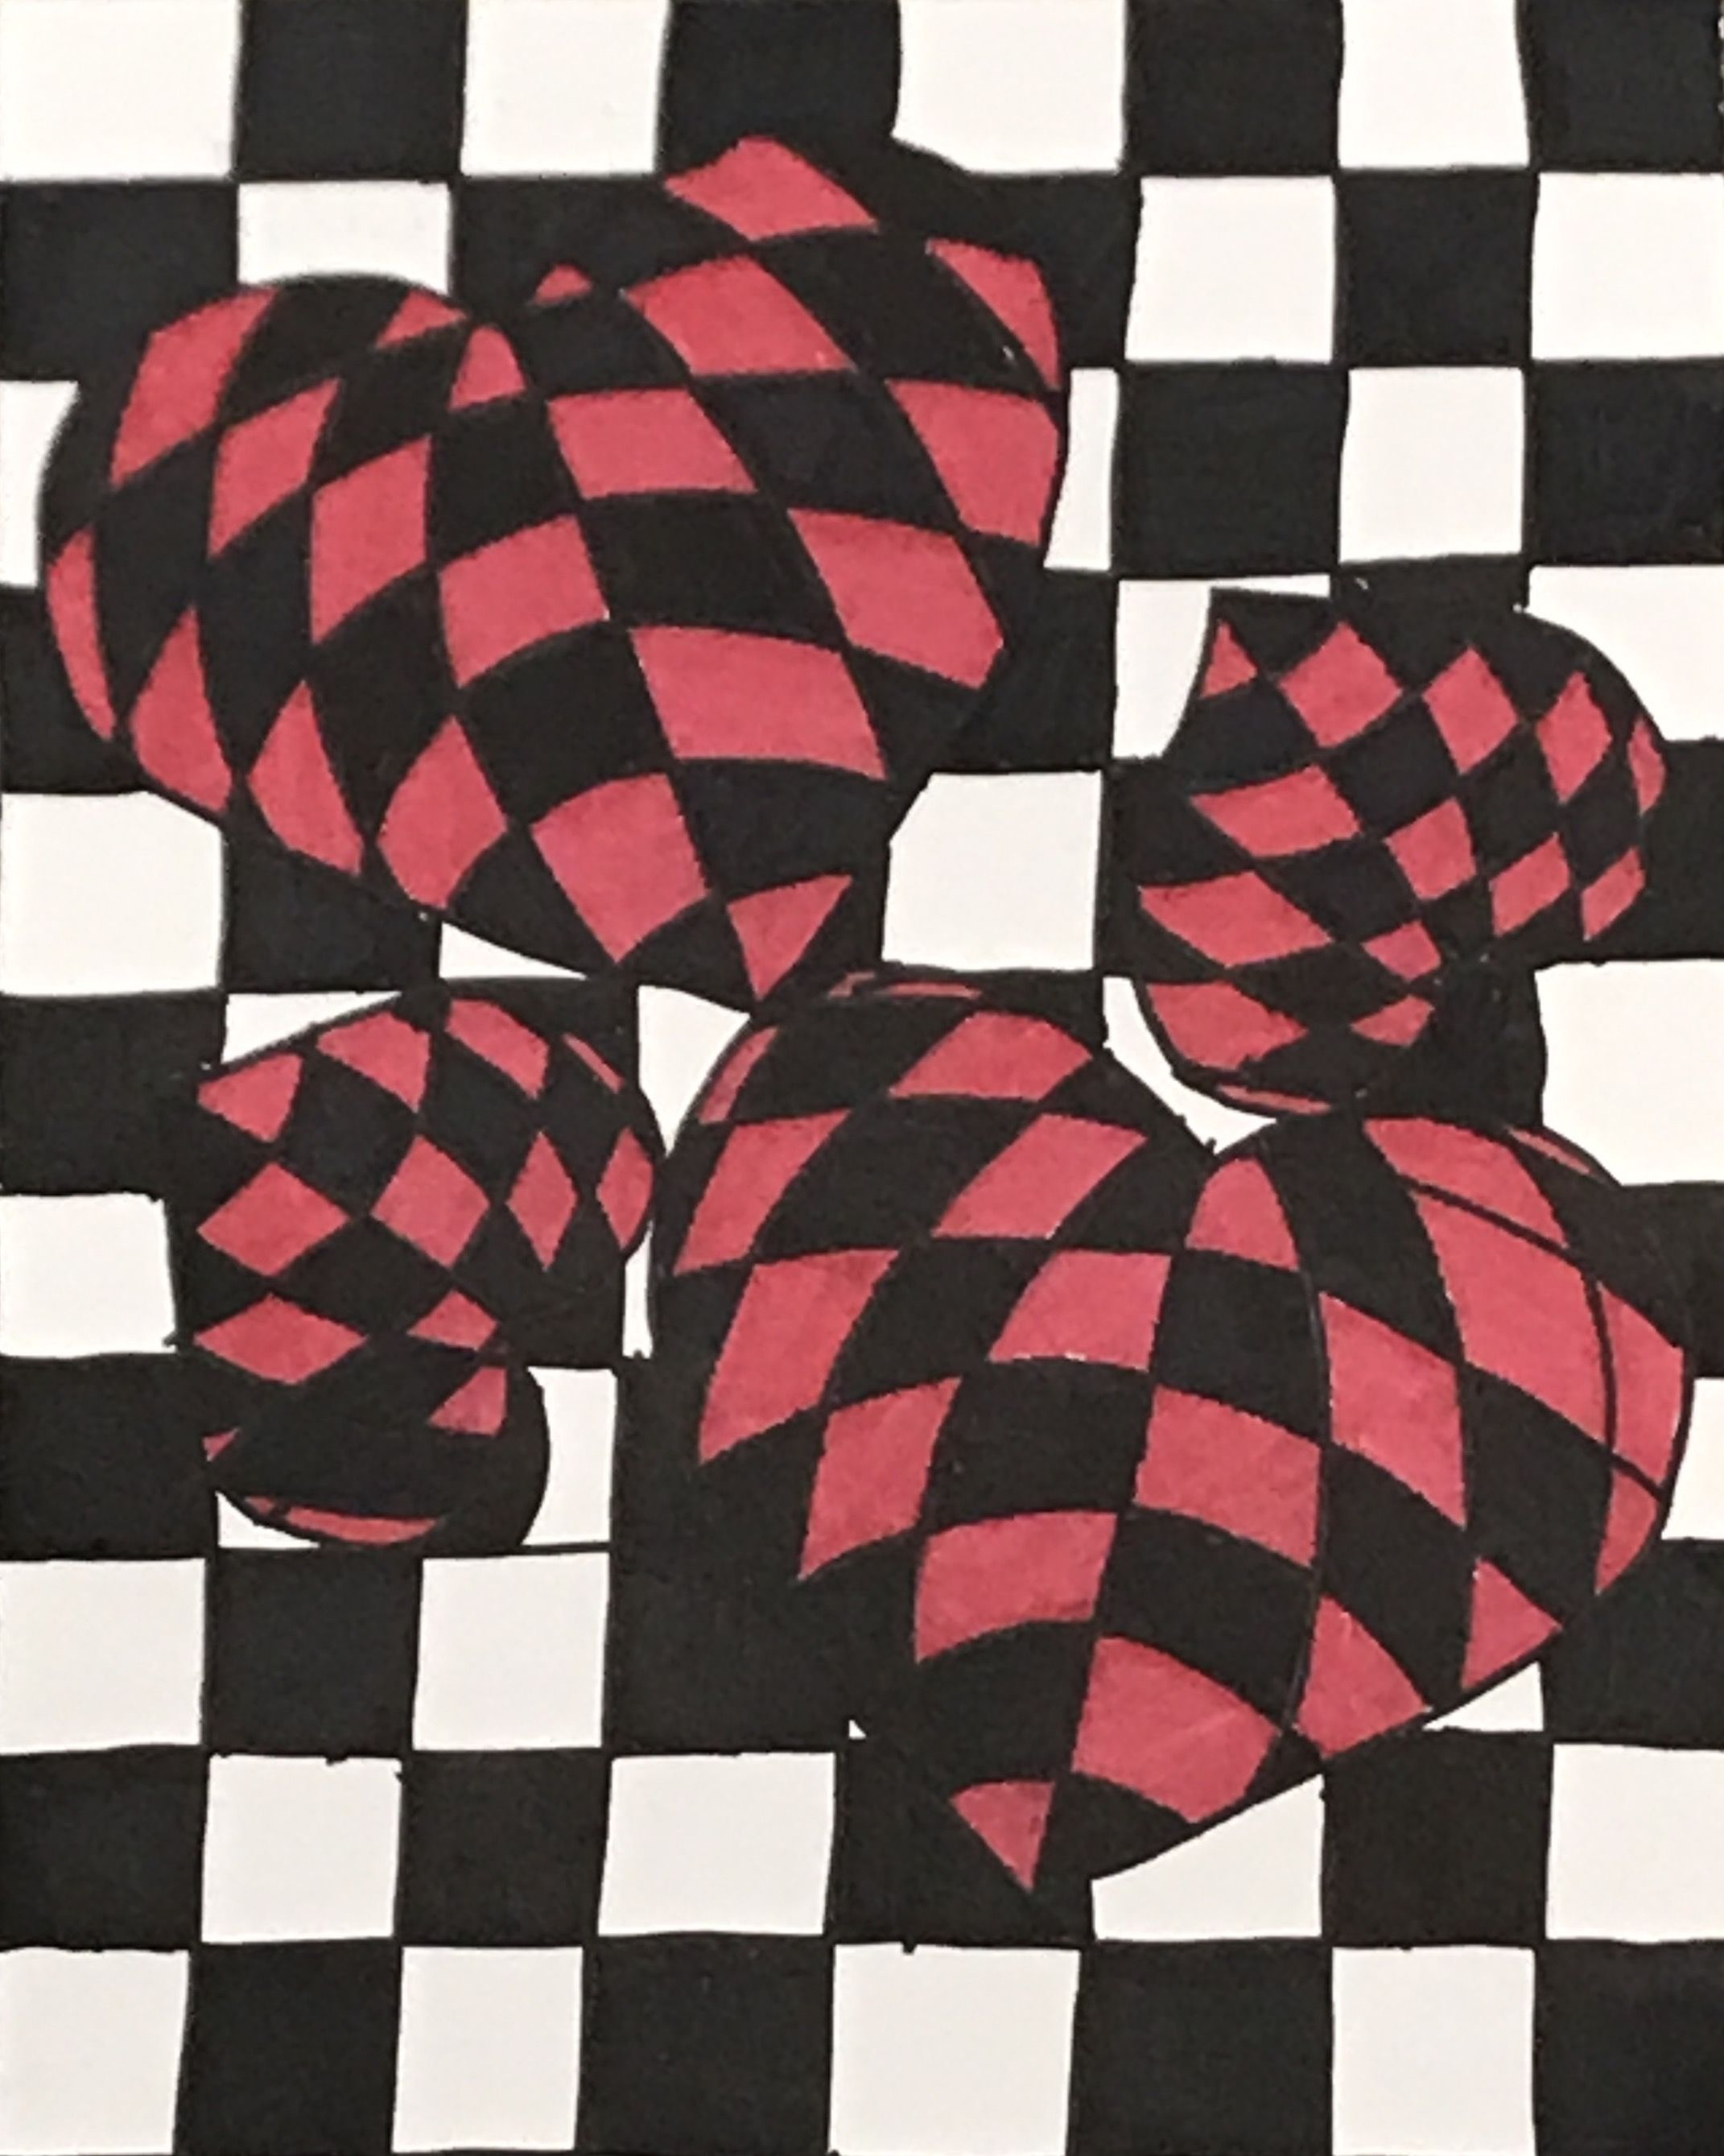 Valentine S Day Art Lesson Design By A Student At